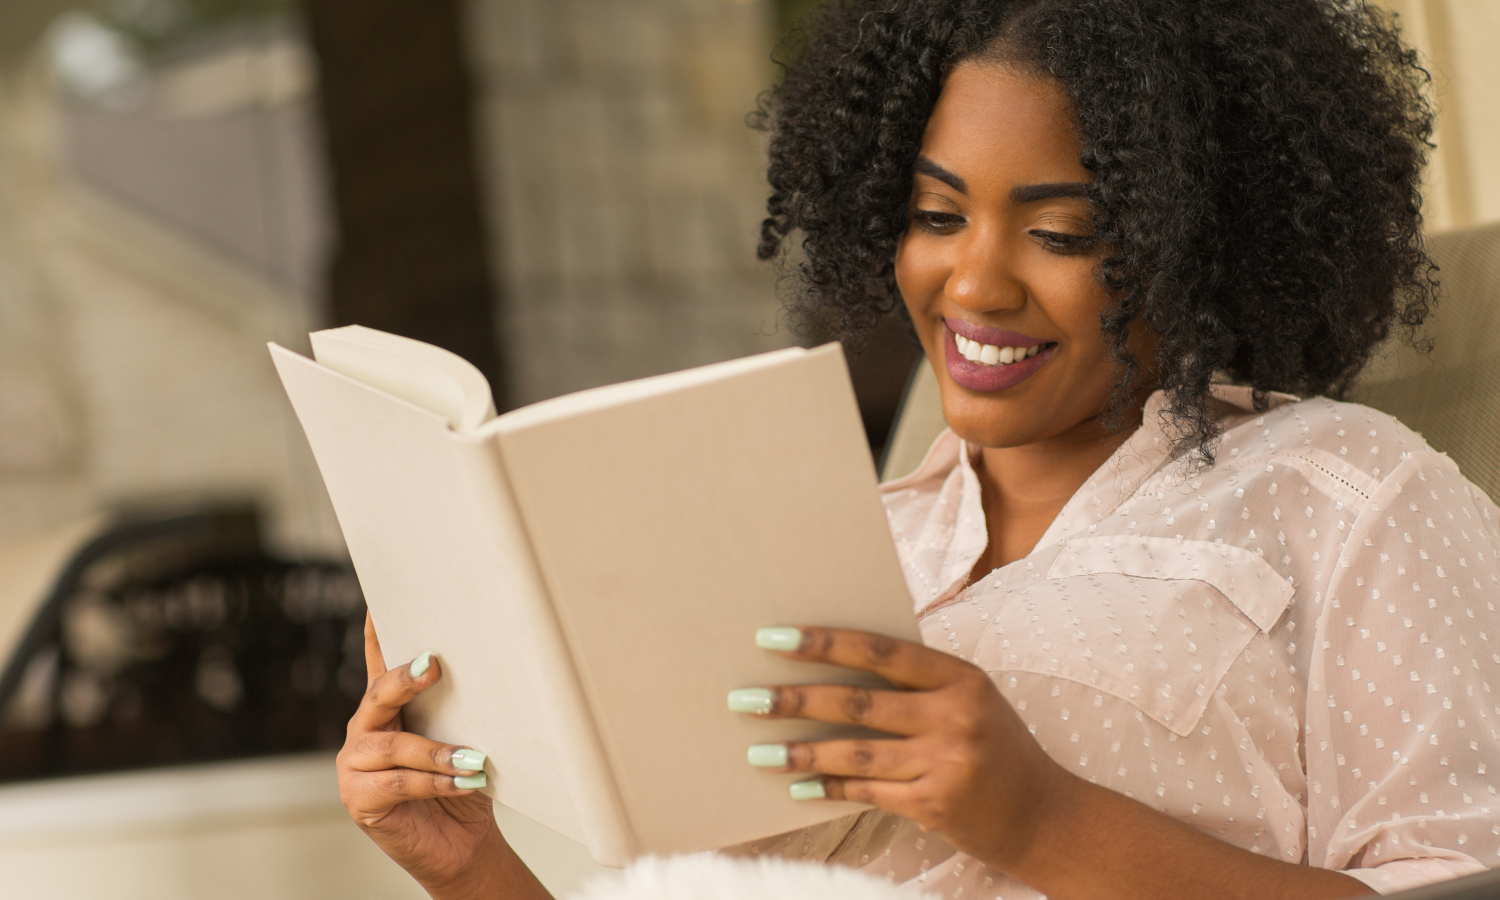 6 Life Changing Books Every Christian Should Read